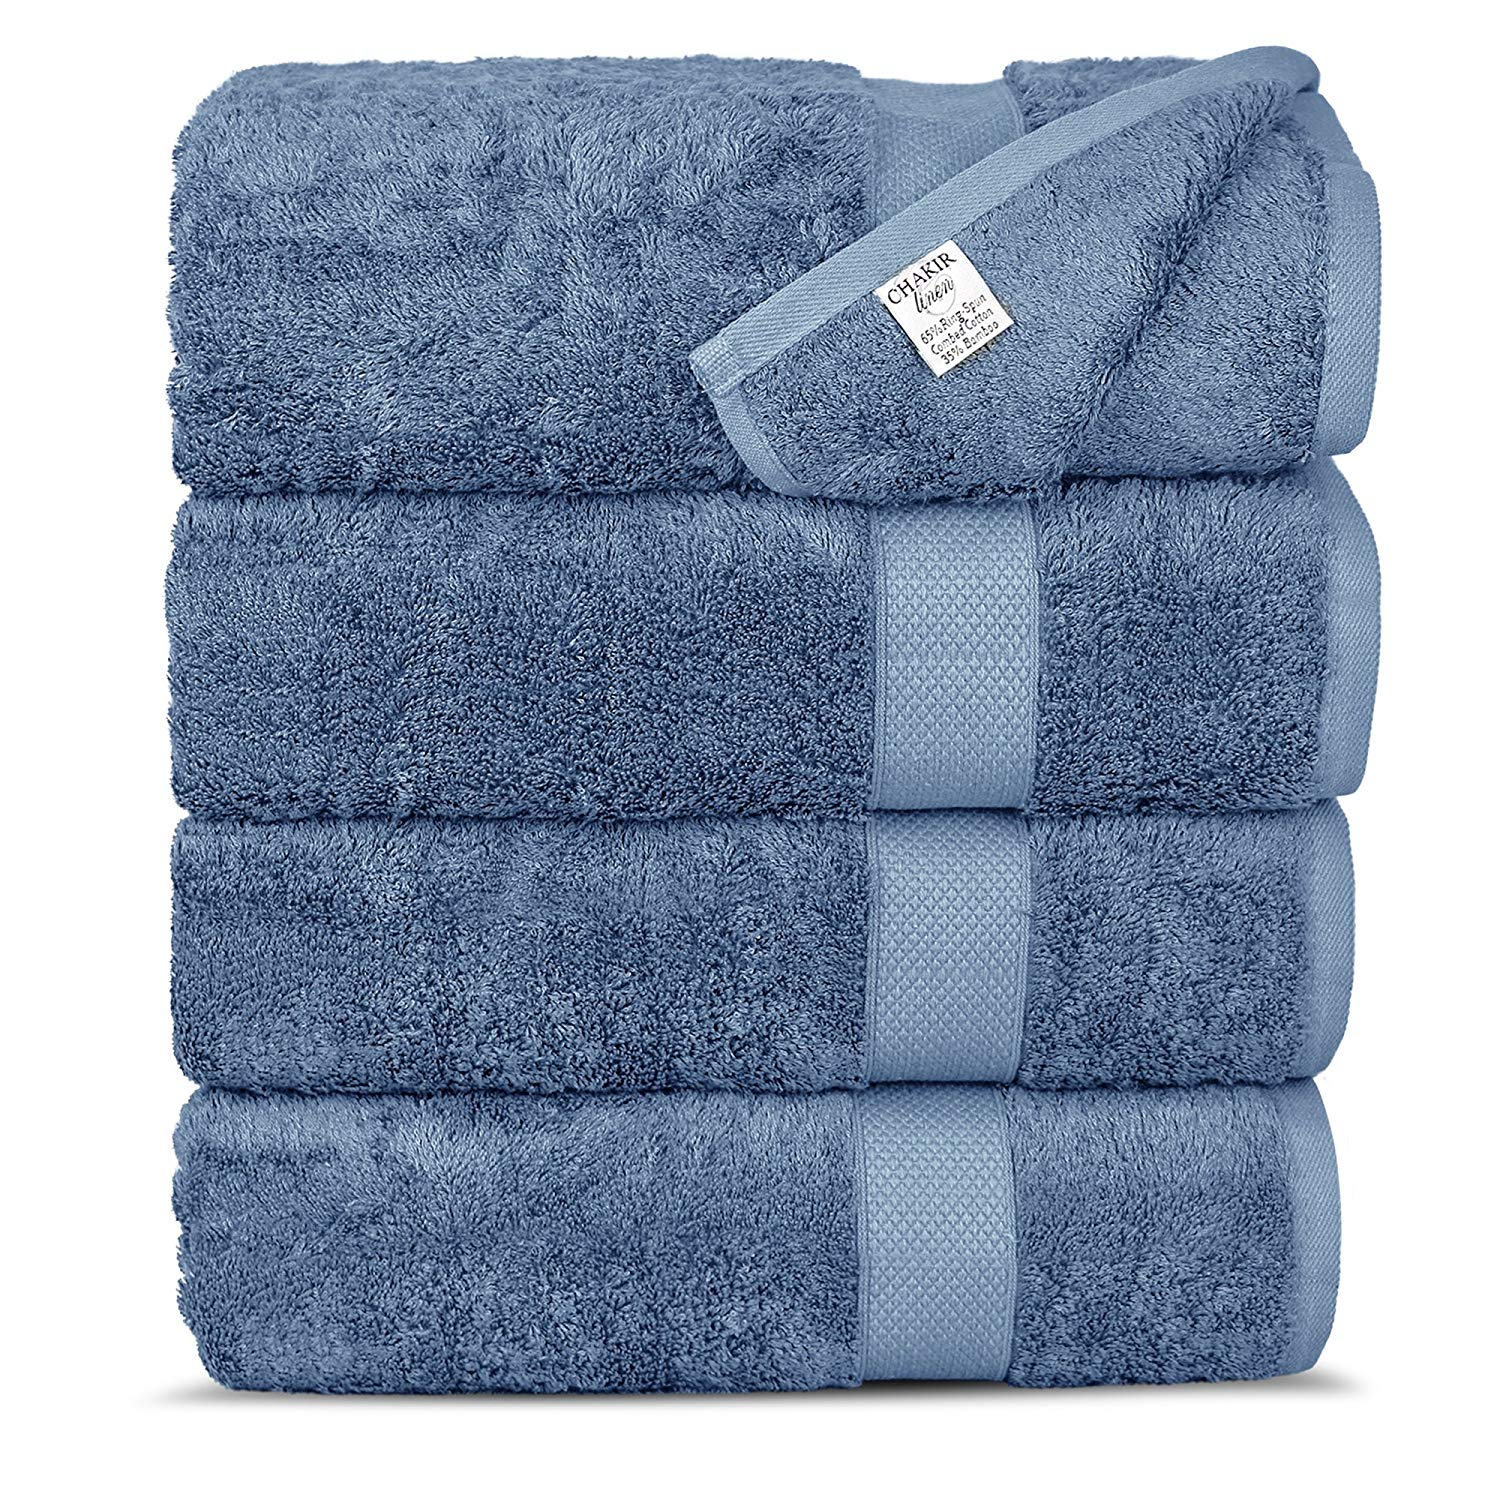 Chakir Turkish Linens Luxury Ultra Soft Bamboo 4-Piece Set Absorbent and Eco-Friendly, Bath Towels, Wedgewood